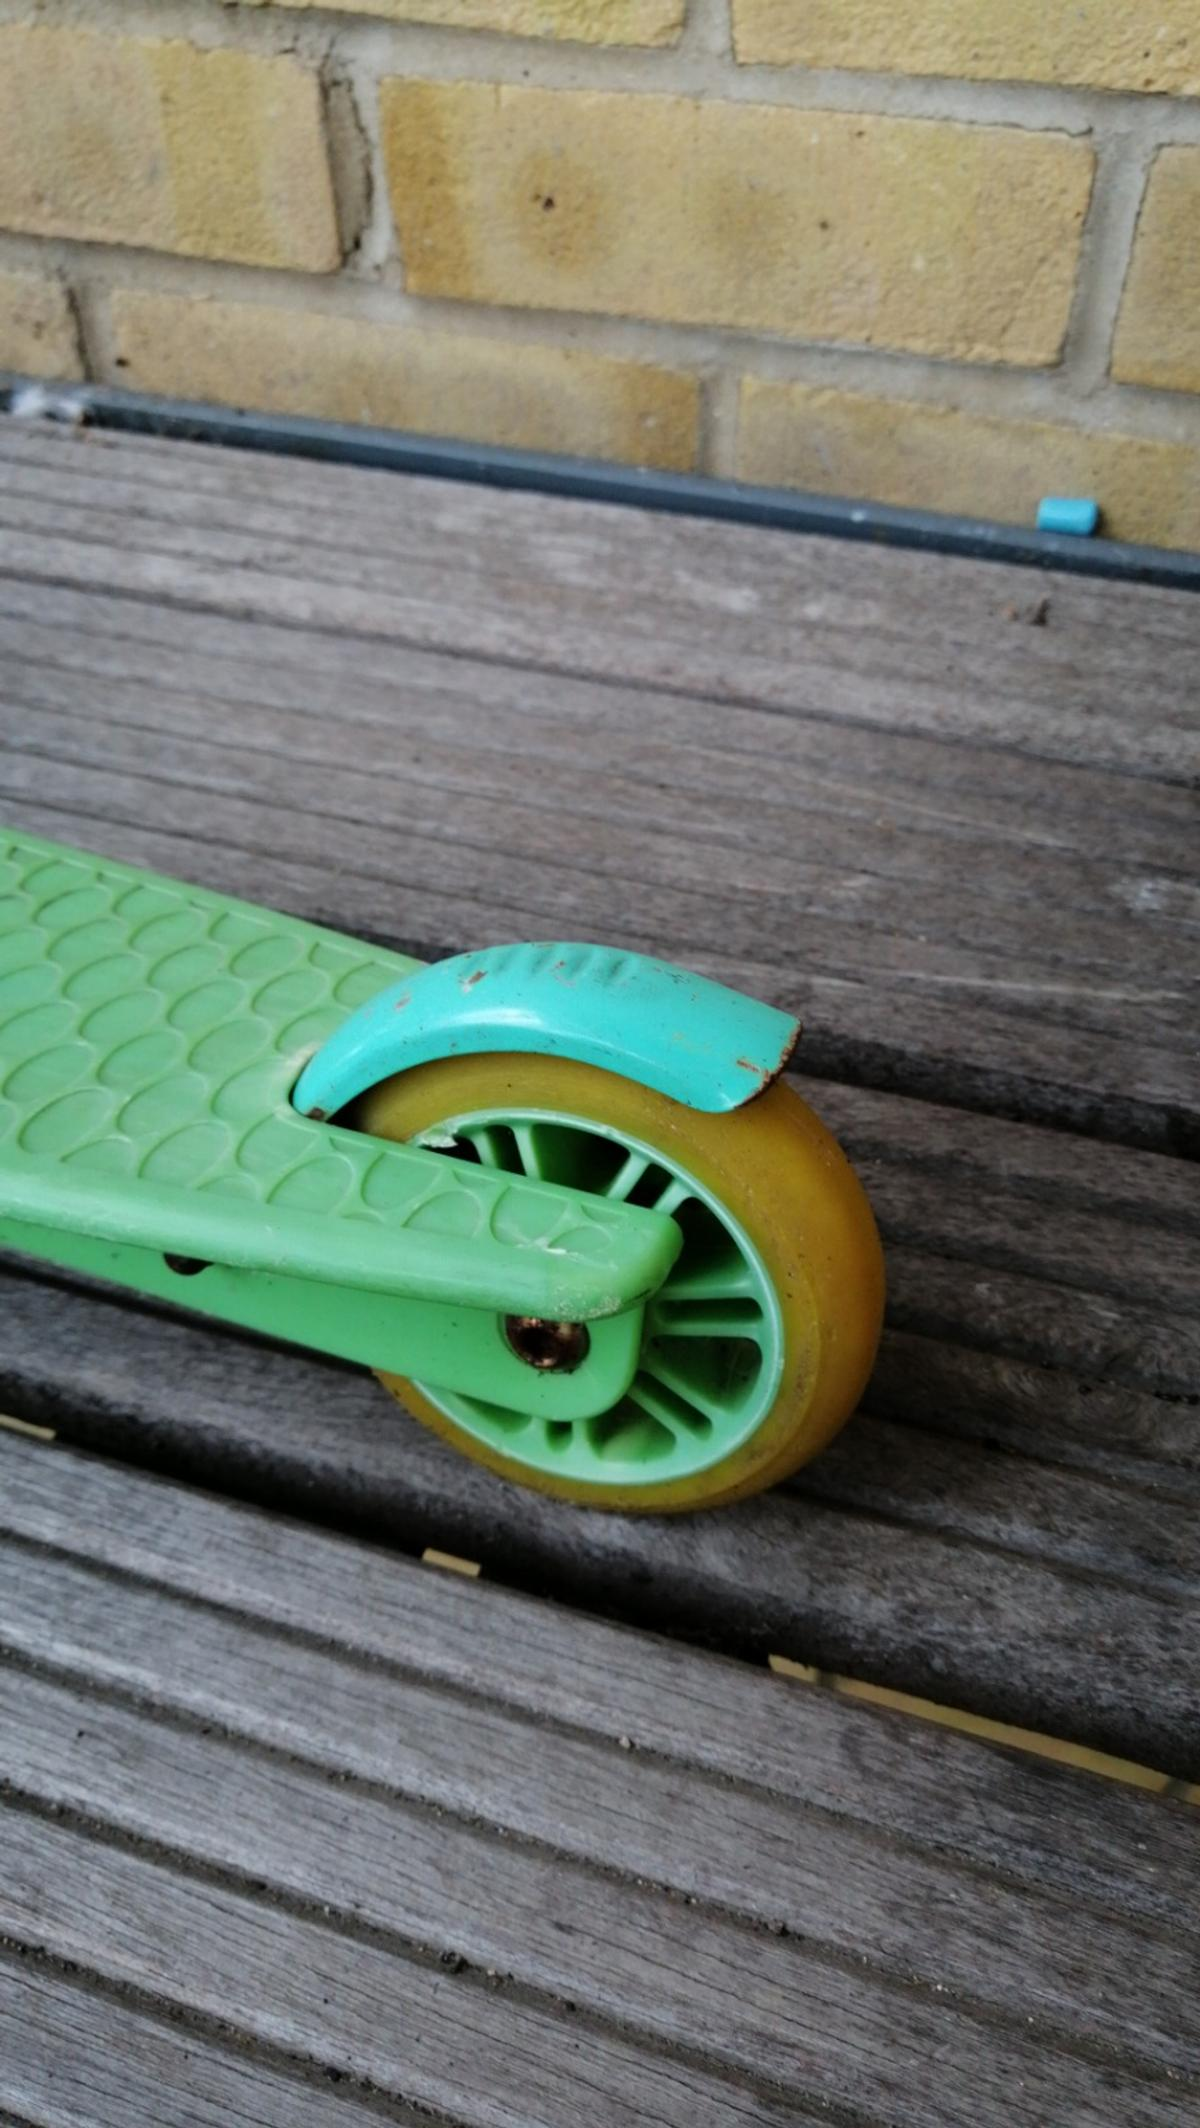 Very smooth wheel for children from 7 to 10 years age. Handles still intact and soft although it is a little bit dirty.